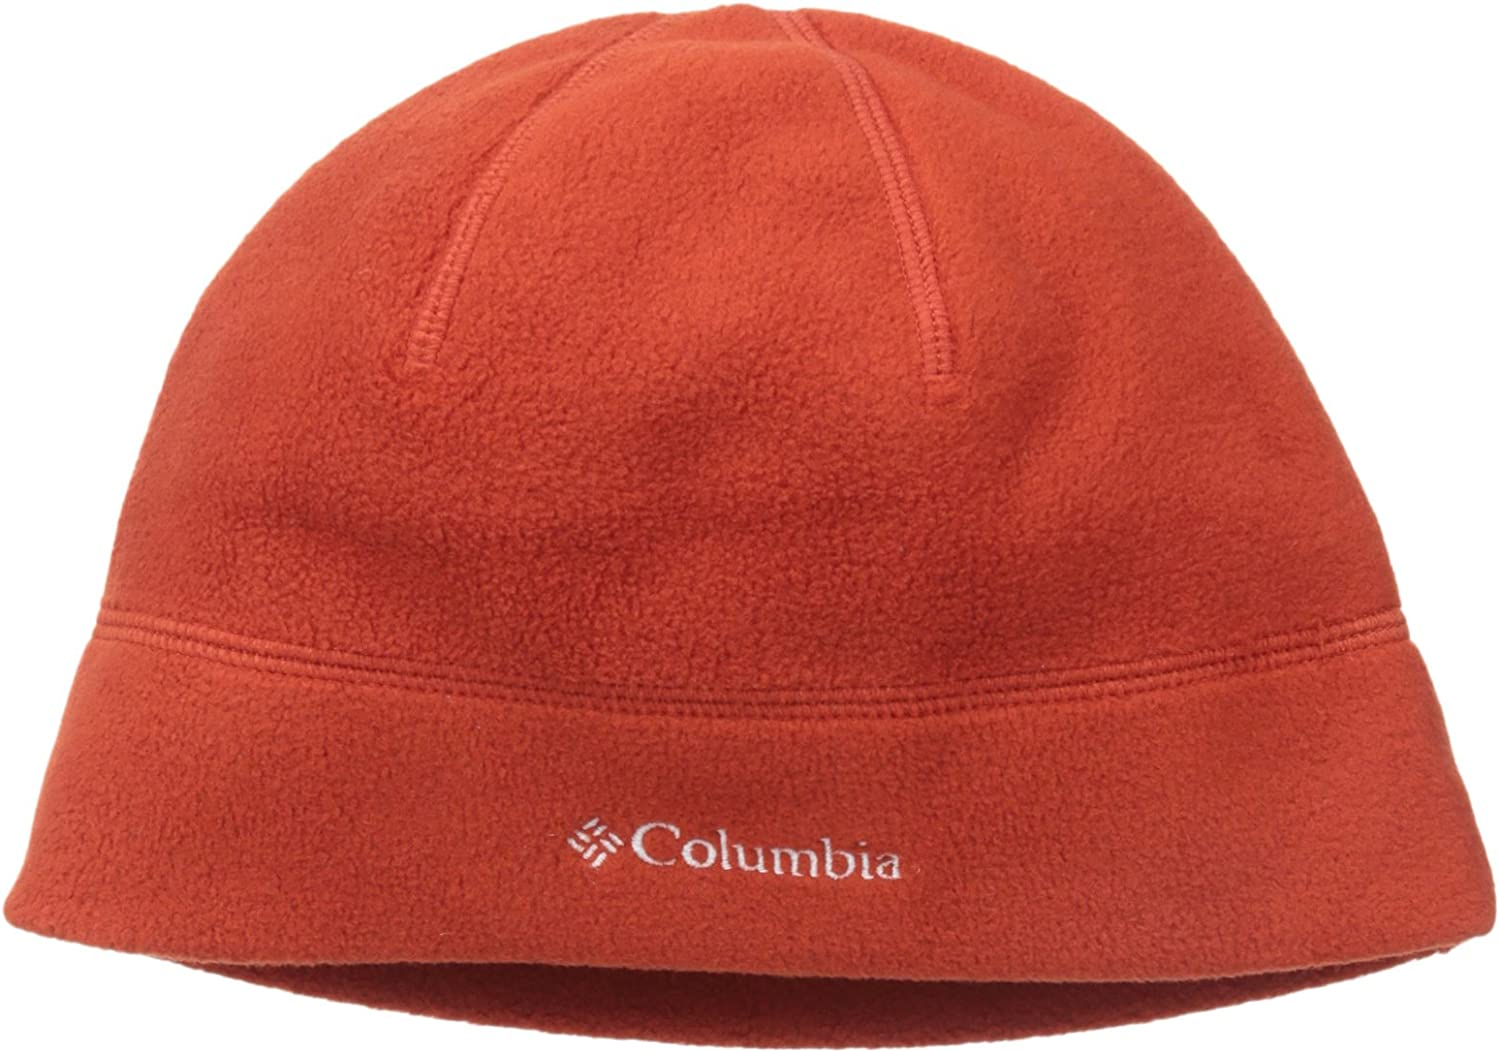 Columbia Men/'s Thermarator Hat Thermal Reflective Warmth